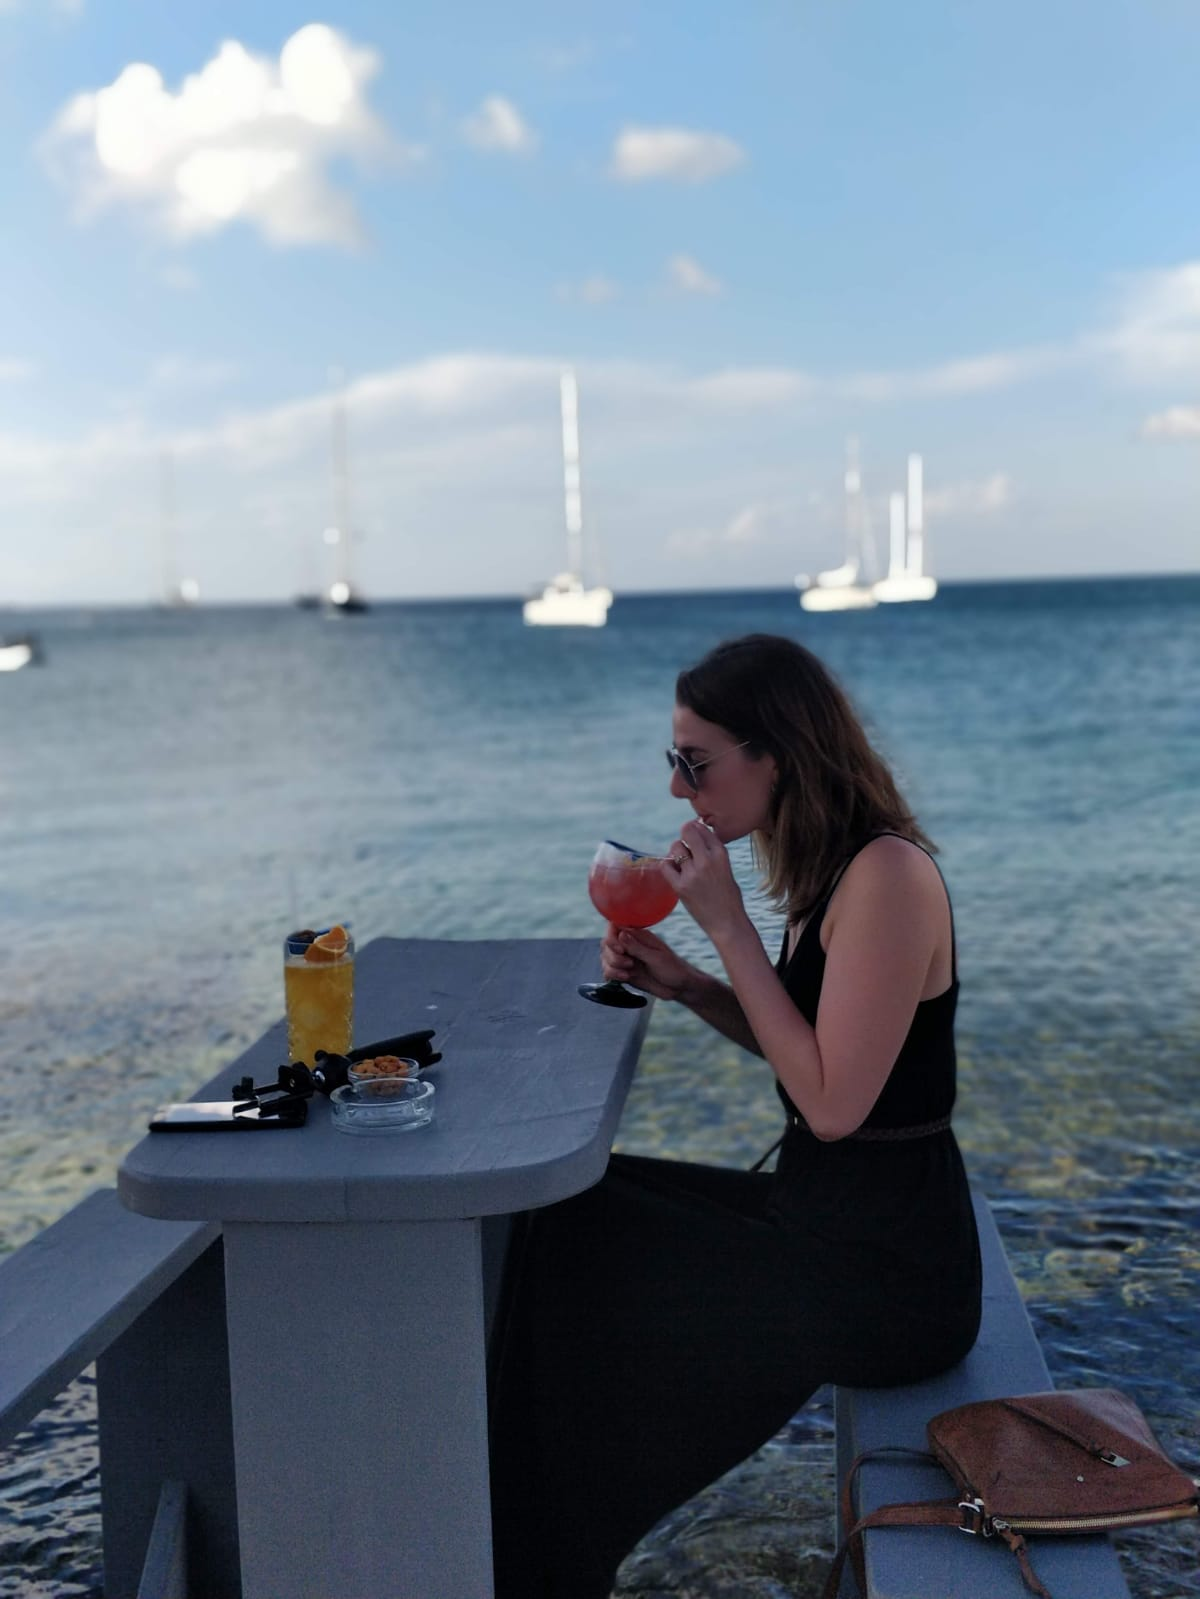 Drink by the sea before dinner - blurred background girl drinks through straw